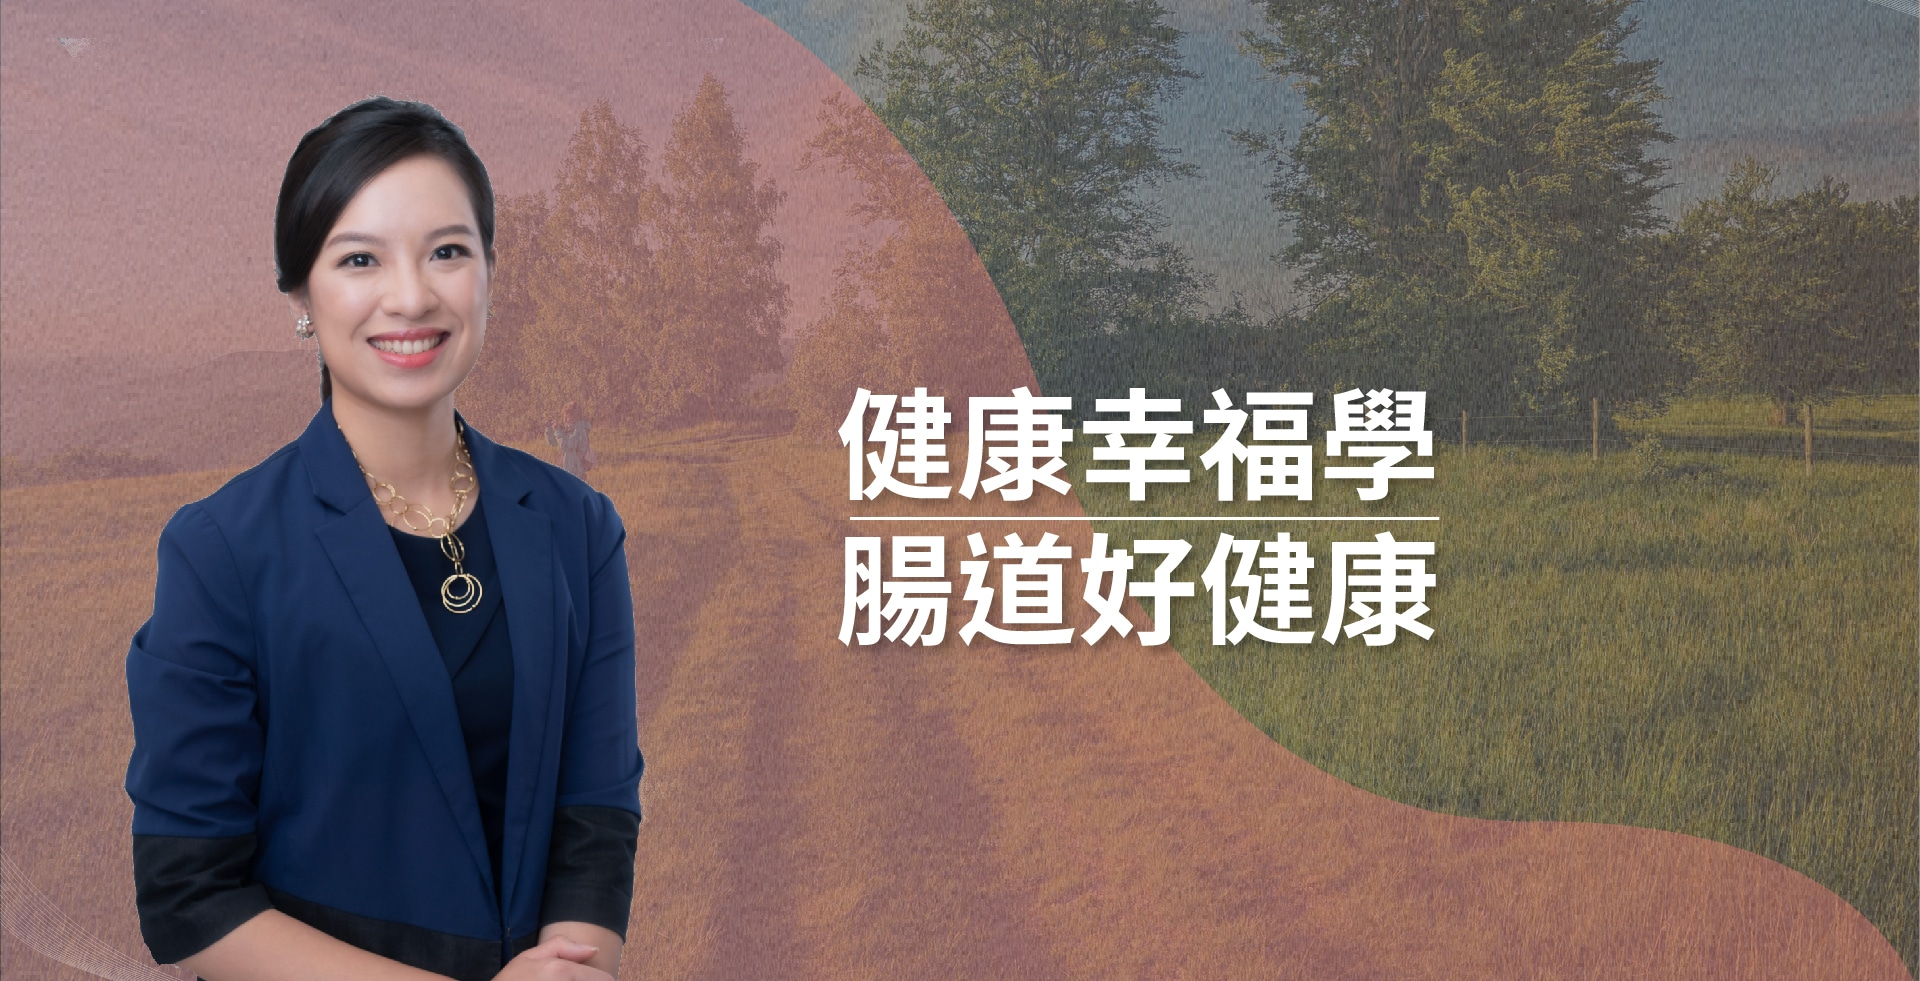 Read more about the article 健康幸福學:腸道好健康